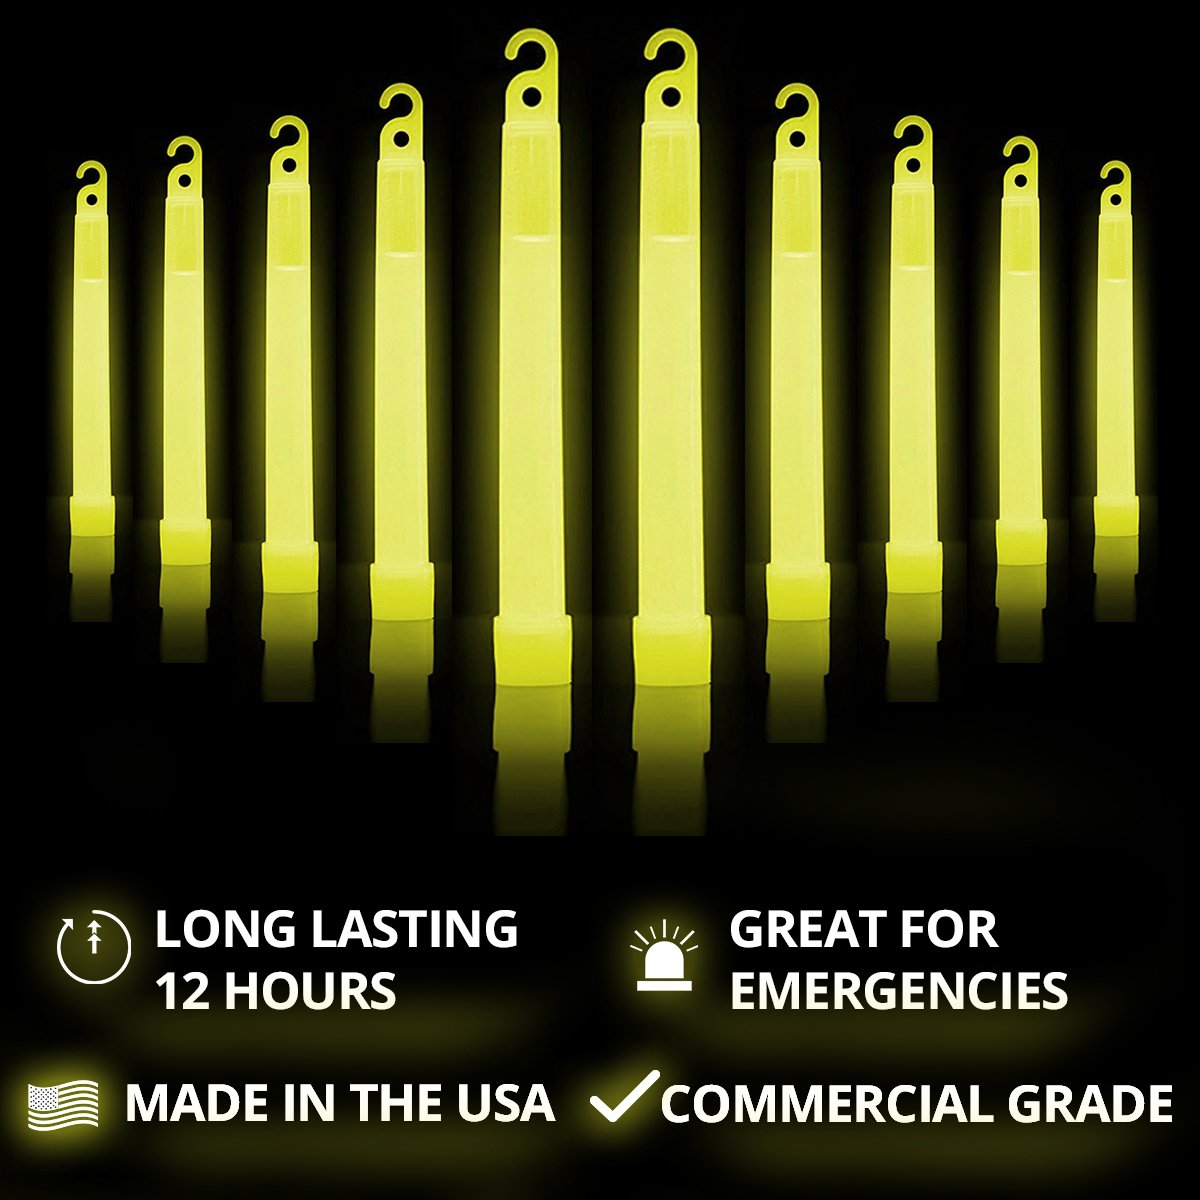 Cyalume SnapLight Yellow Light Sticks – 6 Inch Industrial Grade, High Intensity Glow Sticks with 12 Hour Duration (Pack of 20) by Cyalume (Image #2)